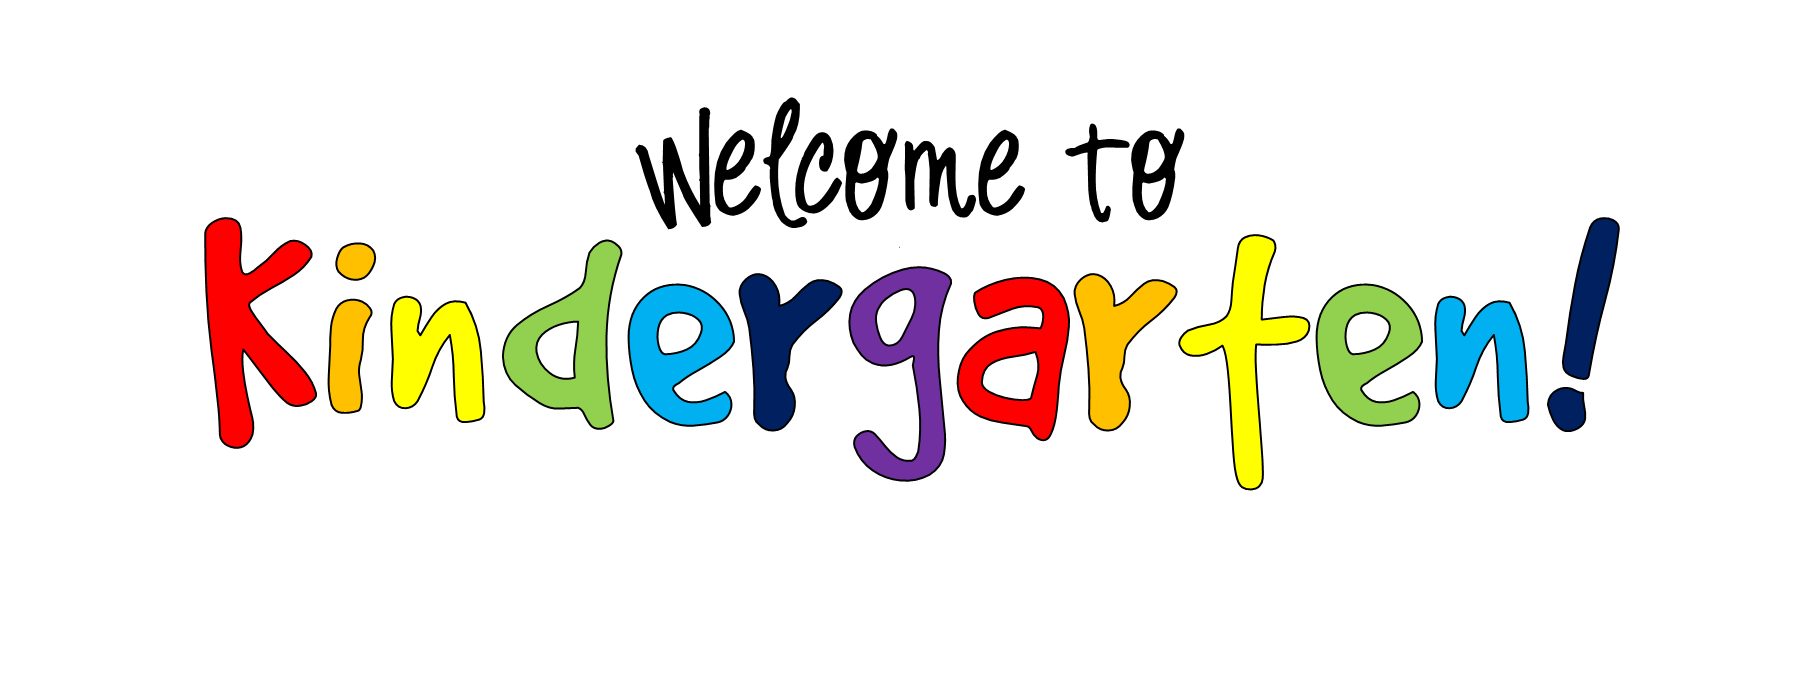 Free clipart kindergarten png free-clipart-welcome-to-kindergarten-10 - Chesterbrook Academy png